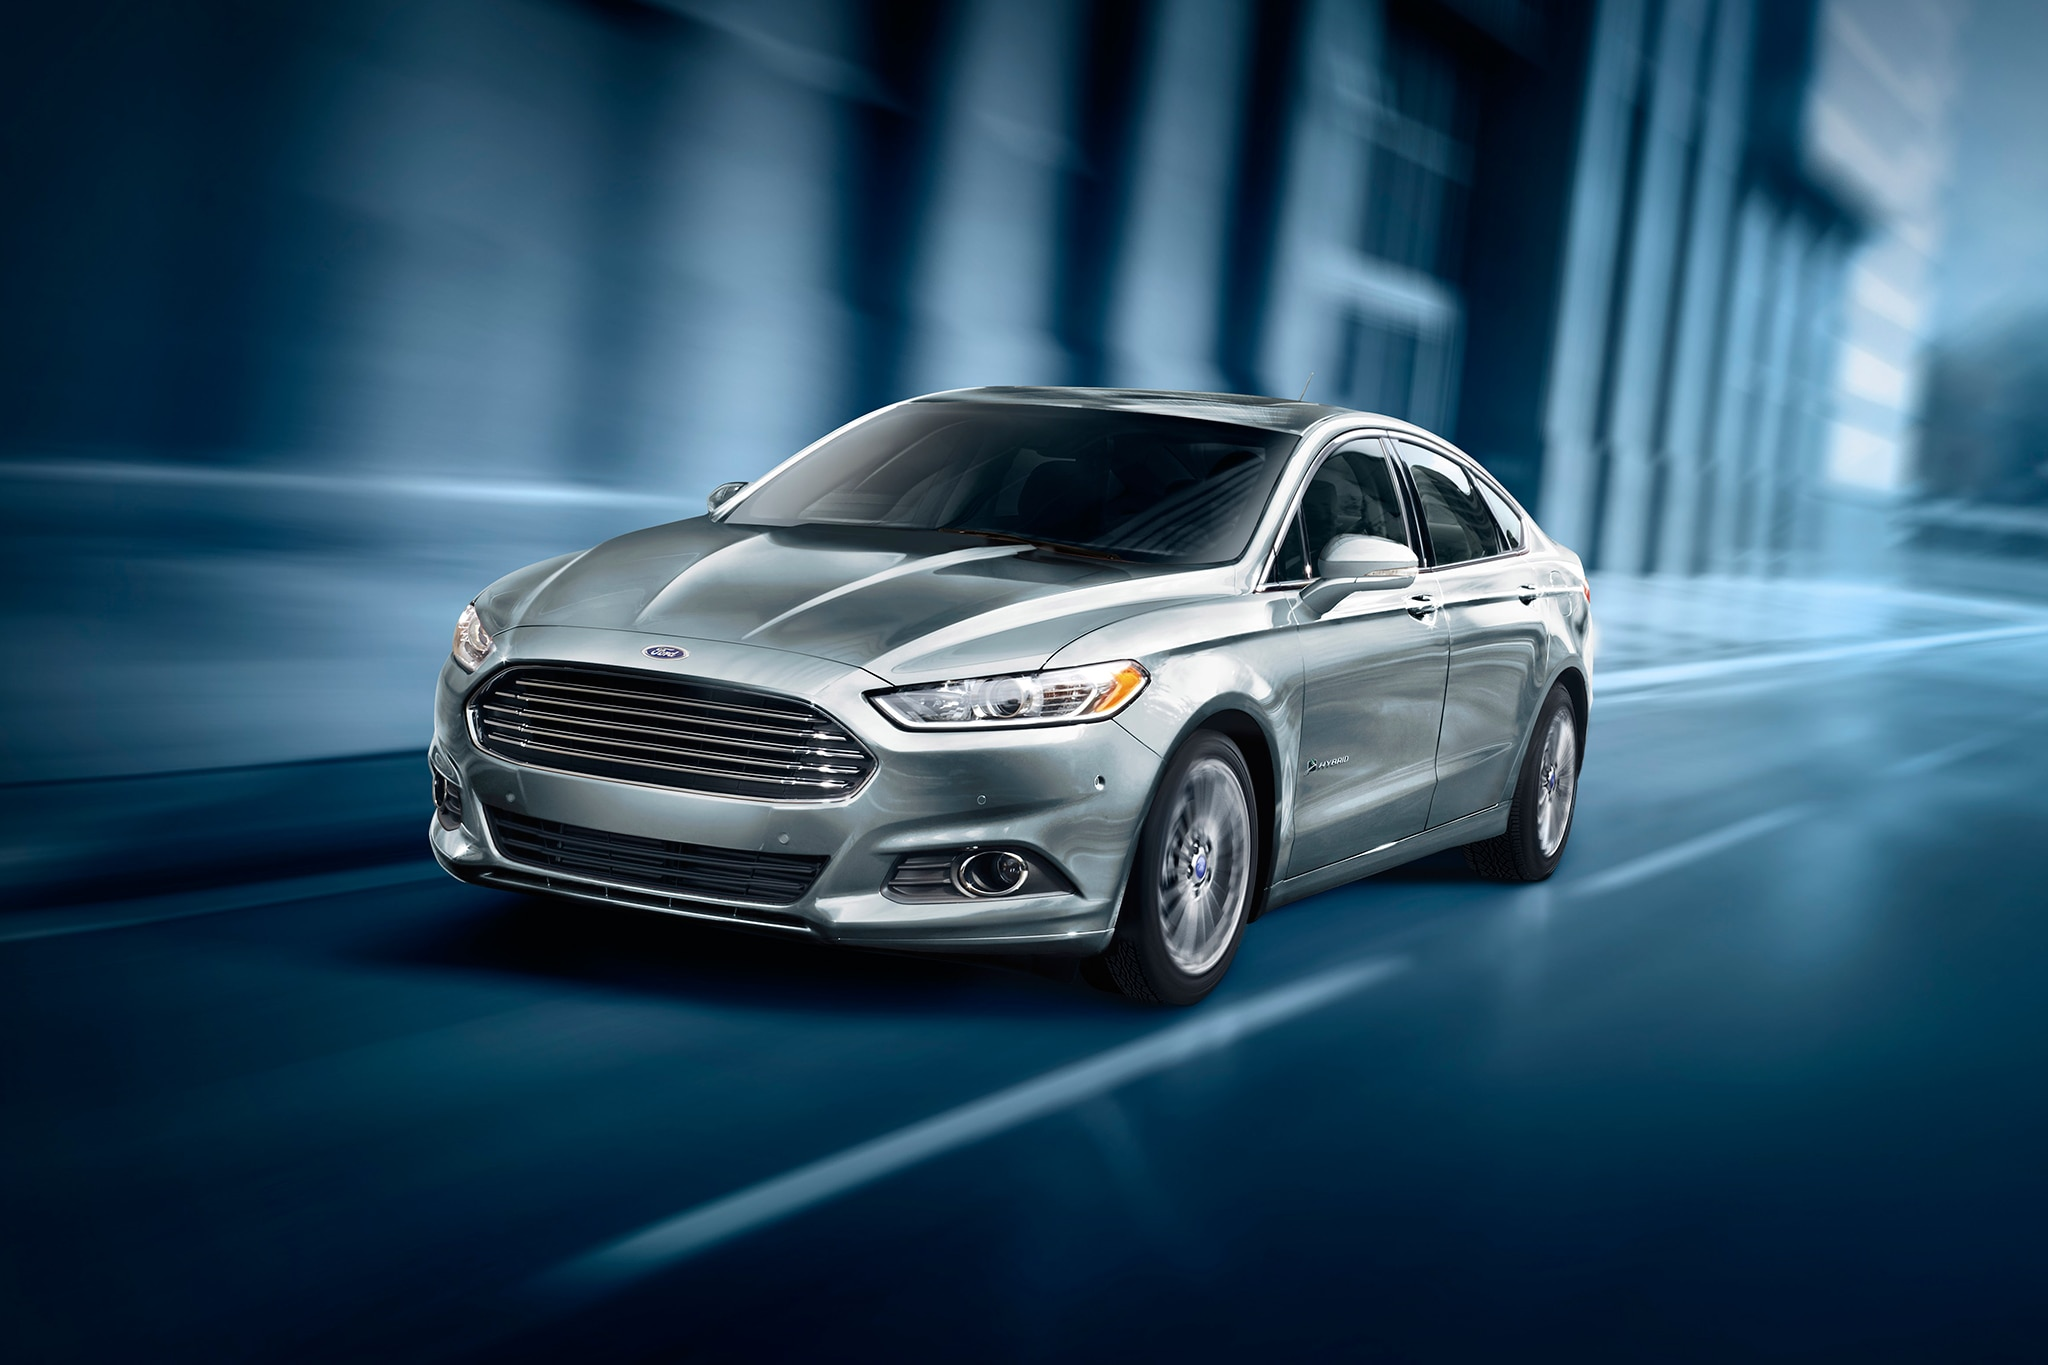 Since ... & Ford Lowers MPG Rating for 2013-14 Hybrids Fiesta - Automobile markmcfarlin.com